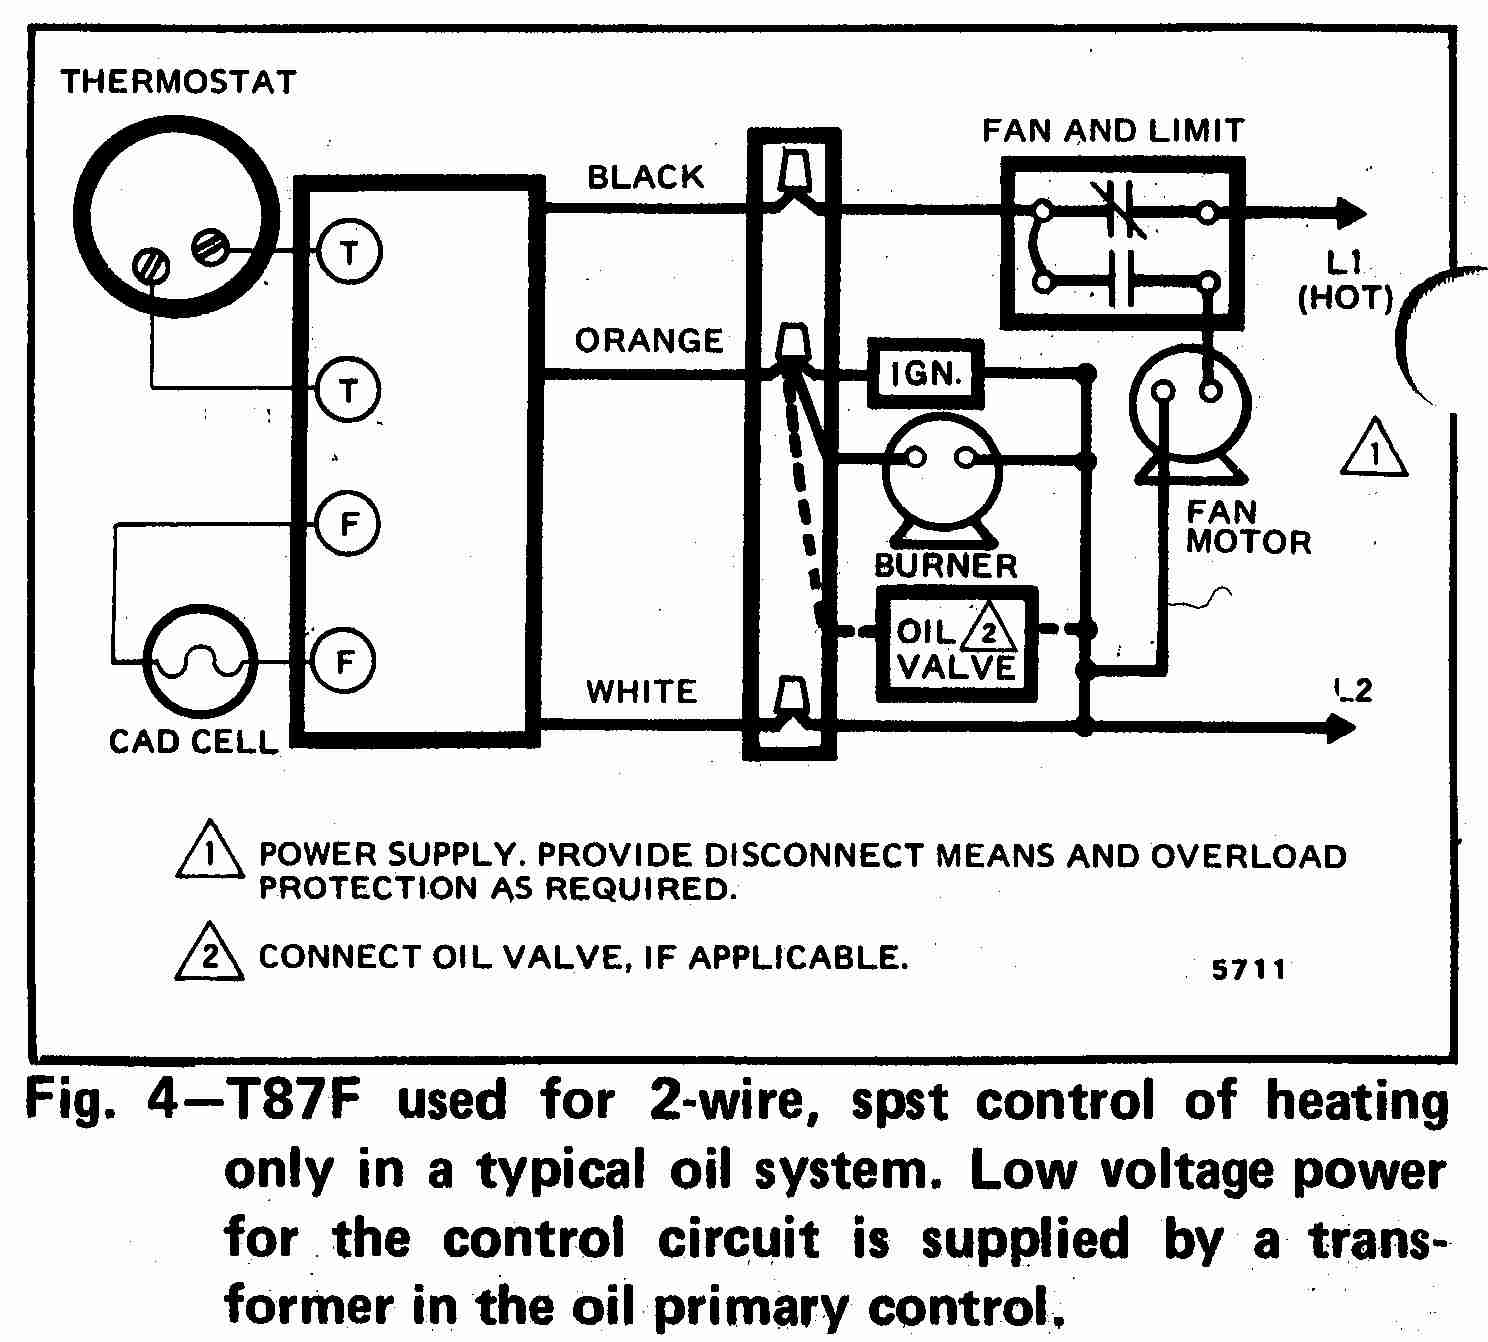 TT_T87F_0002_2W_DJF room thermostat wiring diagrams for hvac systems wiring schematic for at gsmx.co